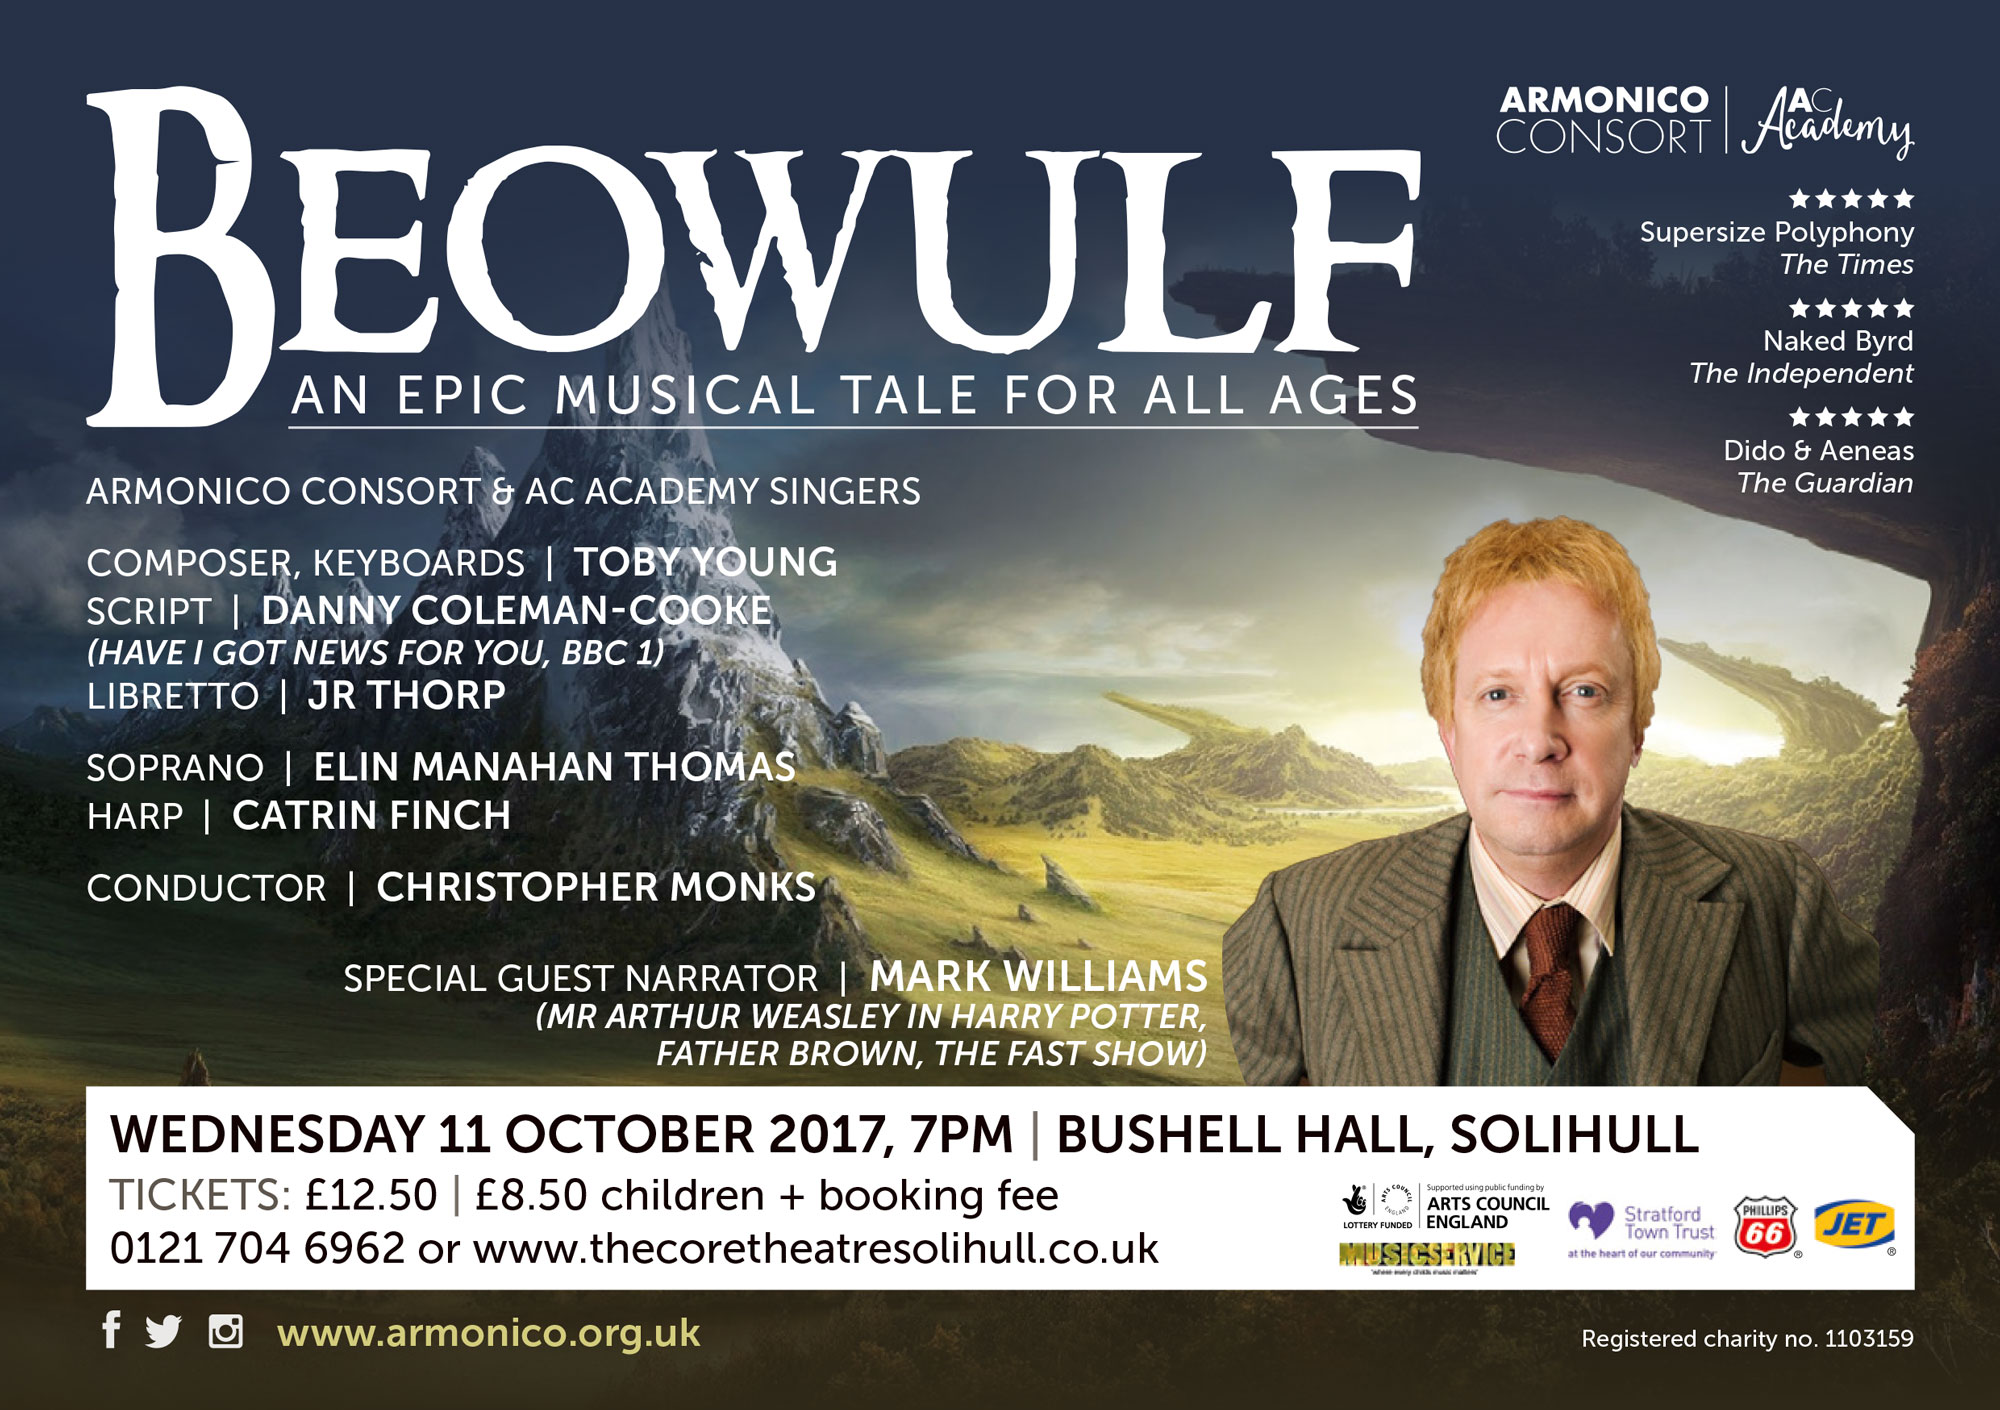 Beowulf-e-flyer_solihull